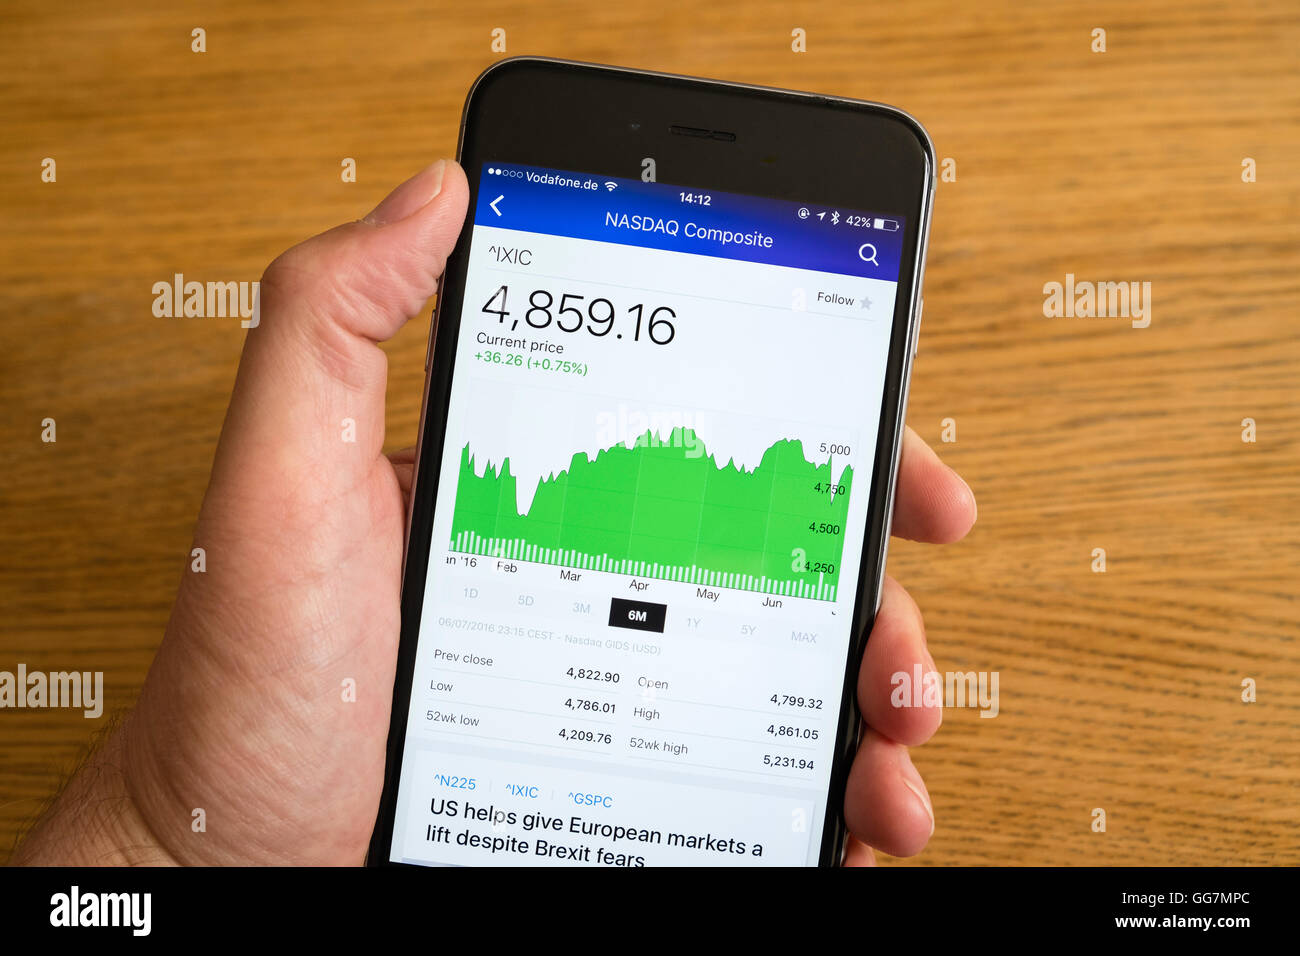 Detail of stock market performance of NASDAQ stock exchange  on a smart phone - Stock Image